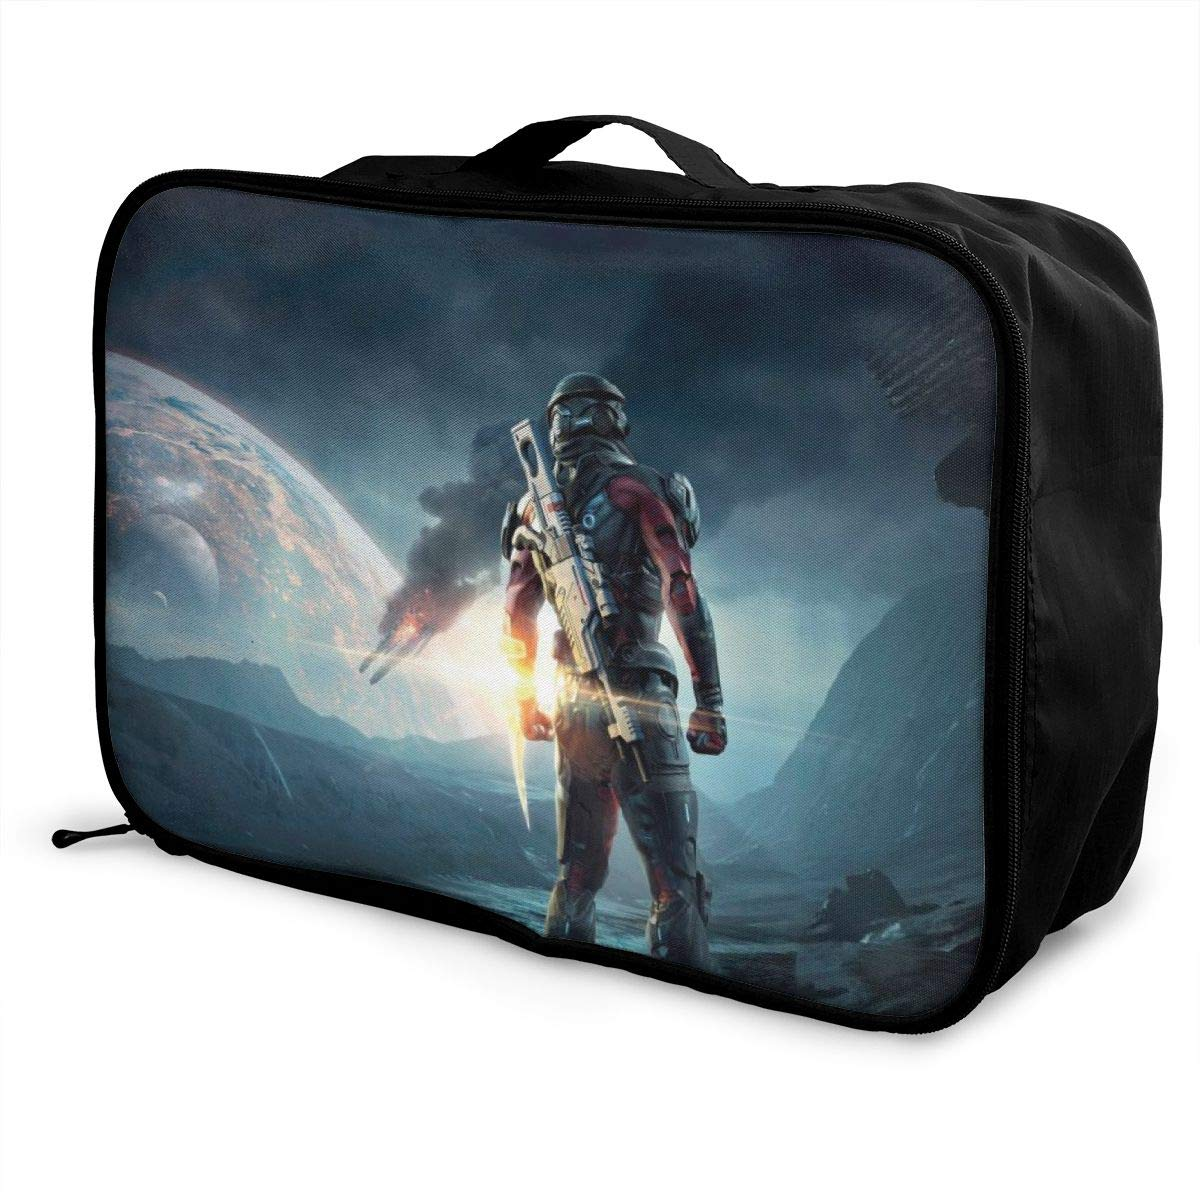 One N7 Warriors Background Customize Casual Portable Travel Bag Suitcase Storage Bag Luggage Packing Tote Bag Trolley Bag